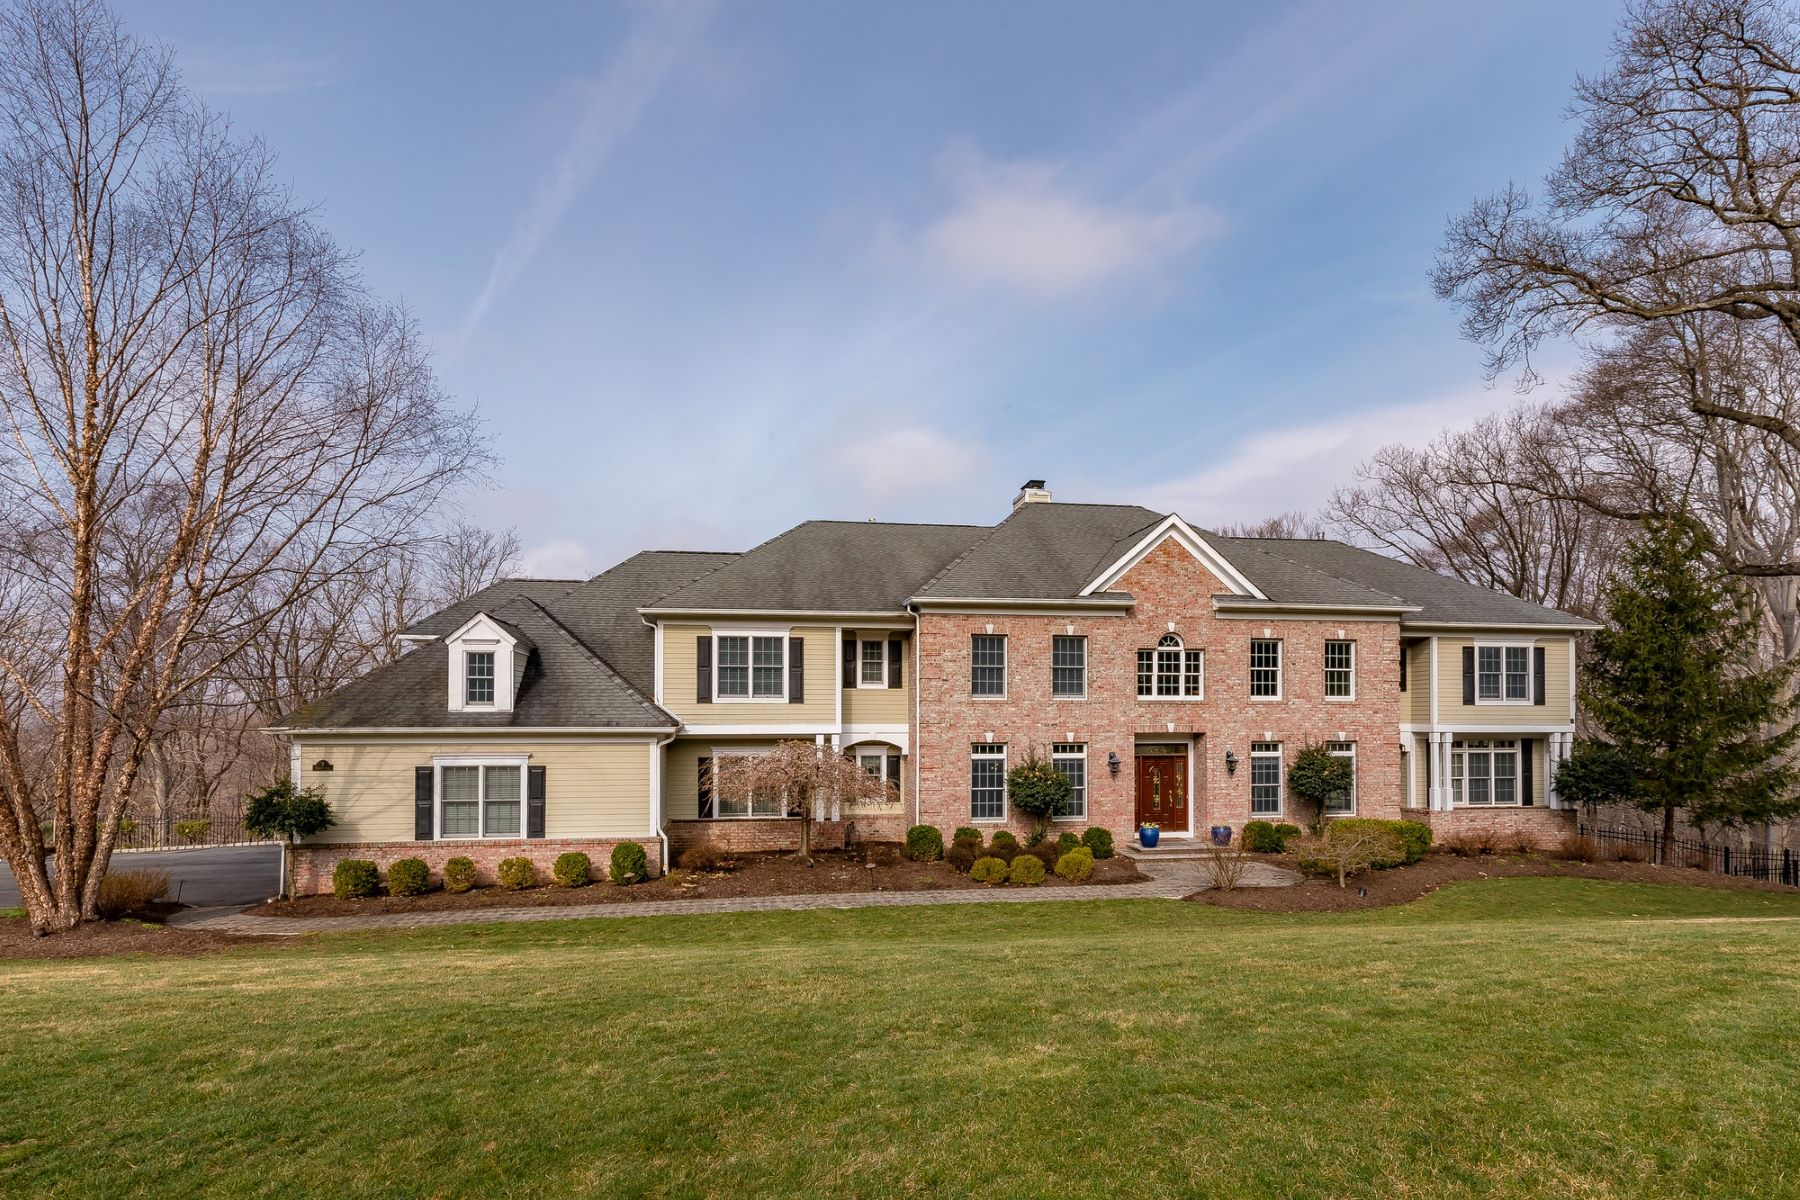 Single Family Home for Sale at Extraordinary Colonial Home 7 Pioneers Lane, Morris Township, New Jersey 07960 United States